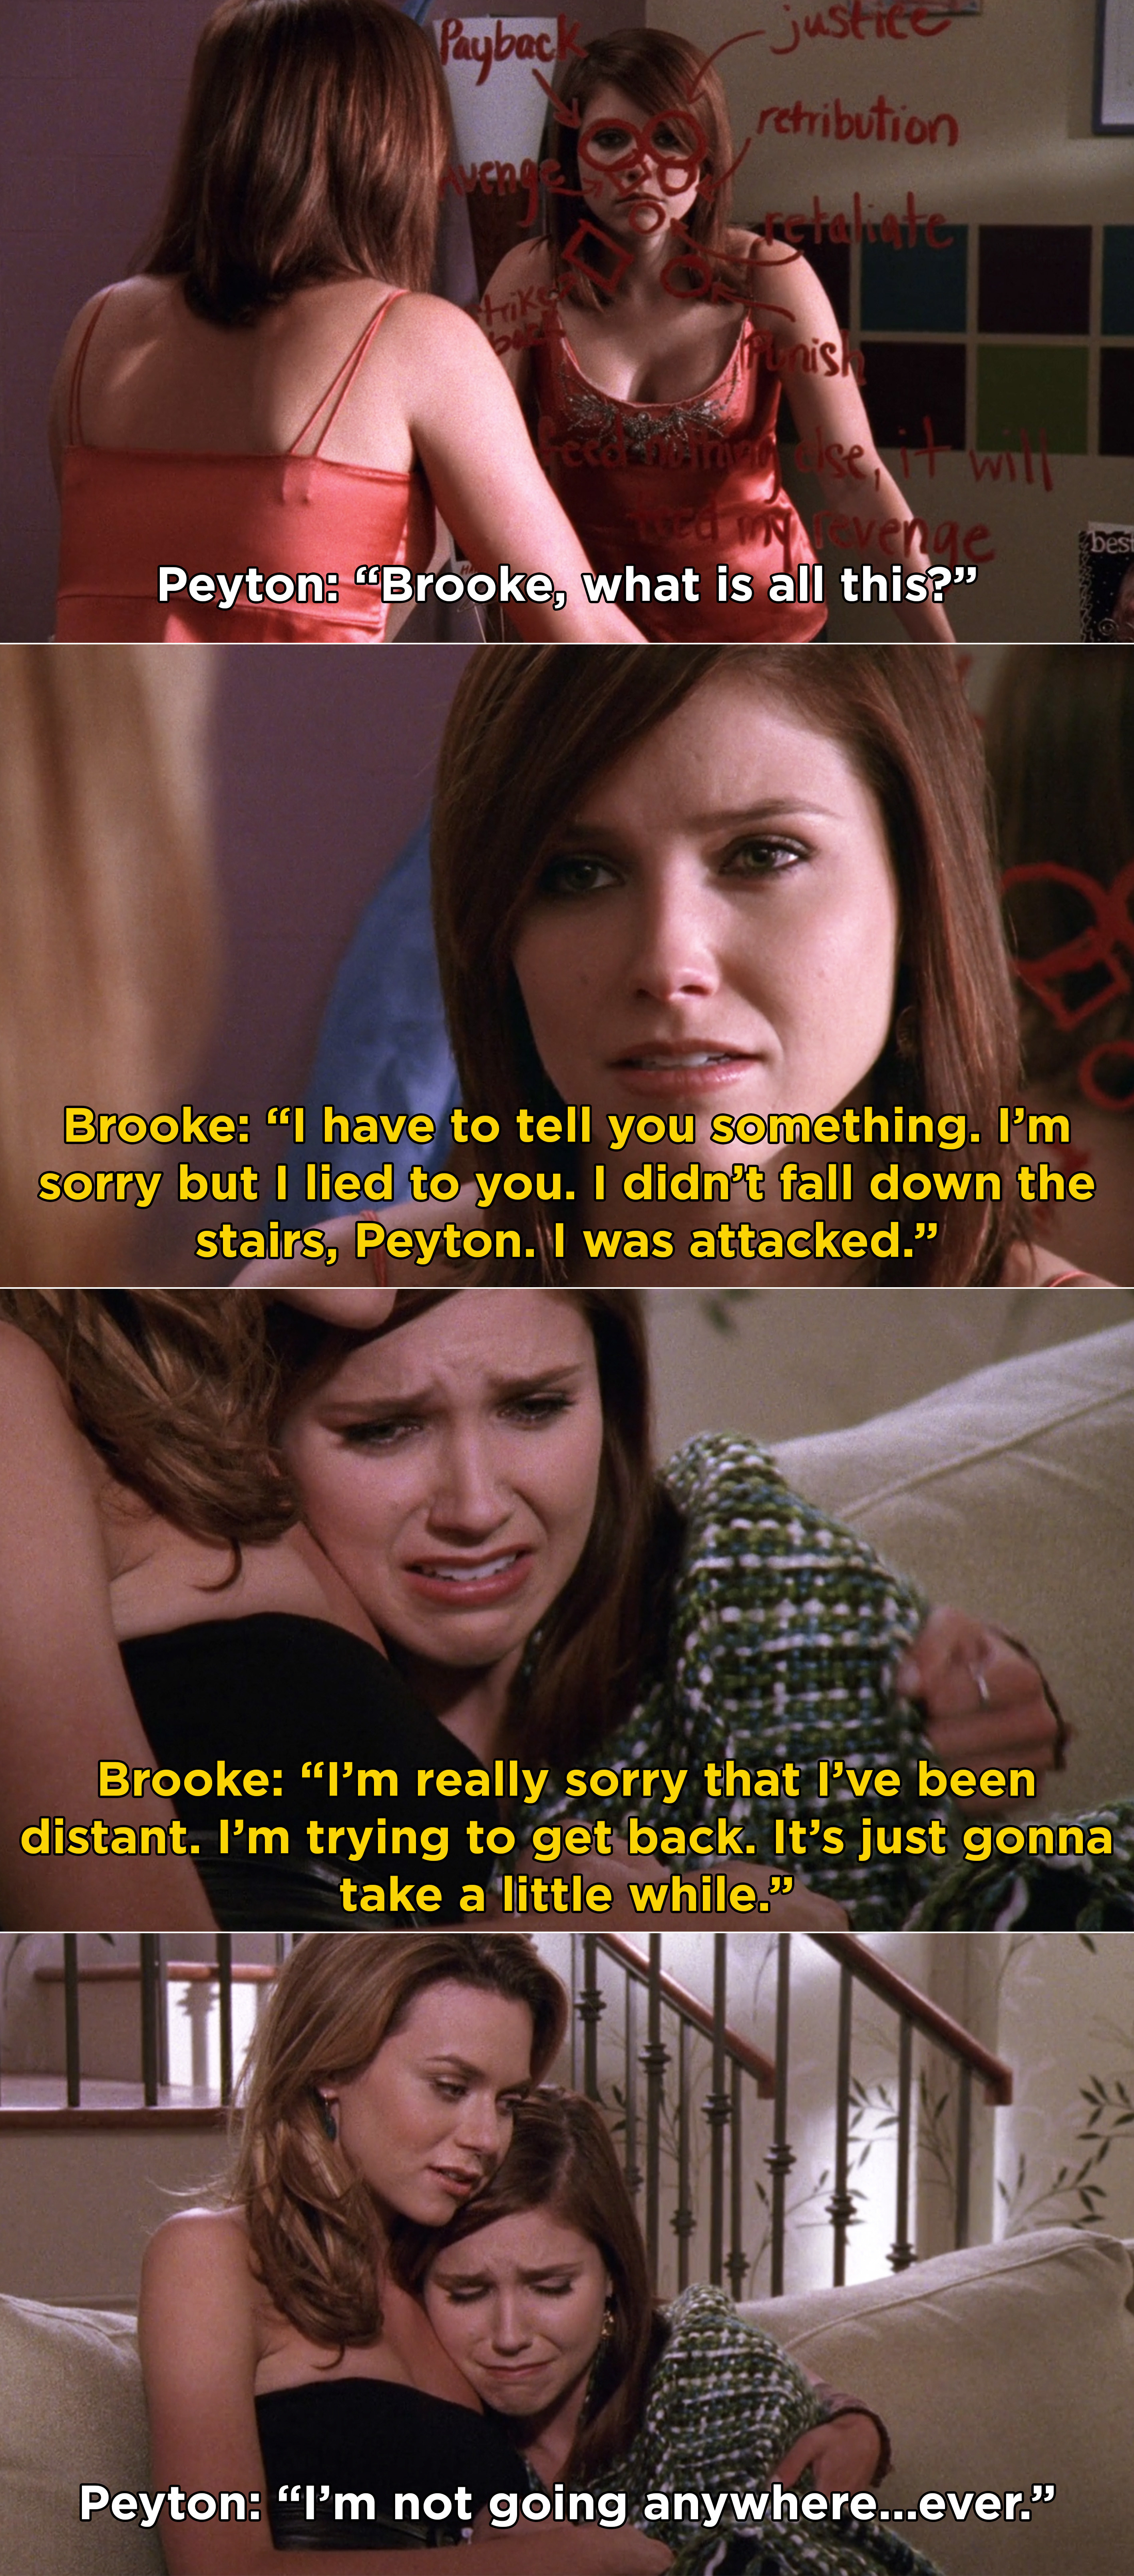 Brooke finally telling Peyton that she was actually attacked and that's why she has been so distant